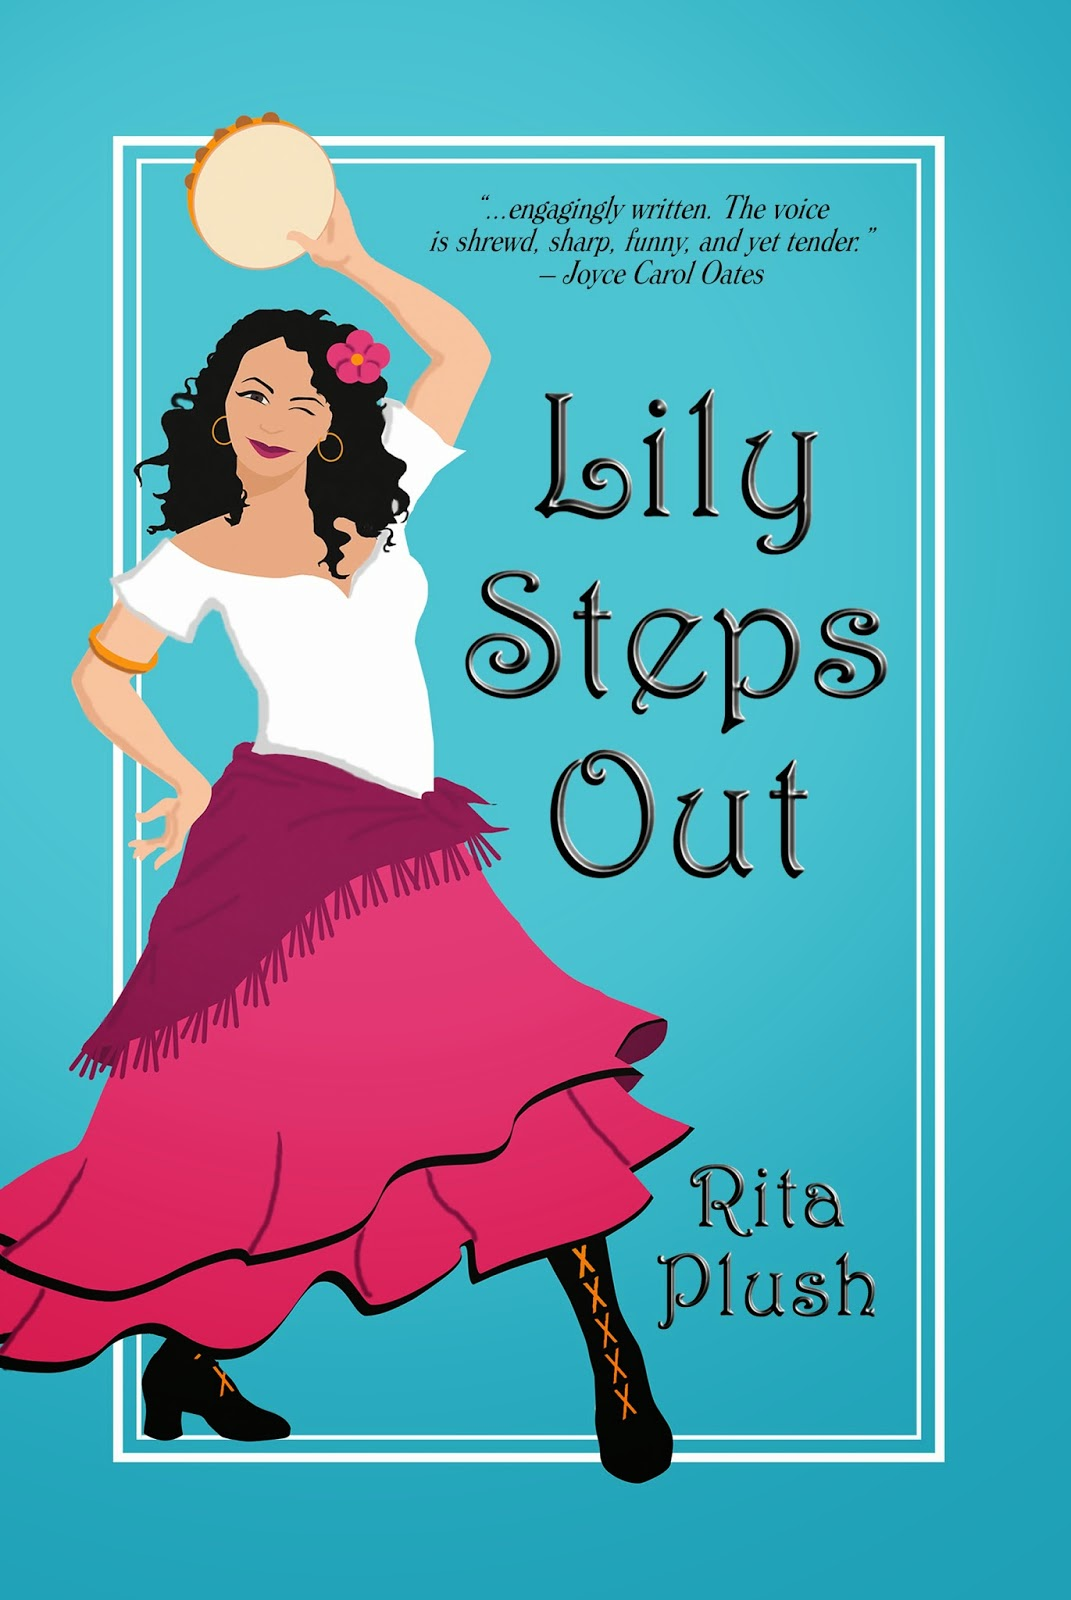 http://www.amazon.com/Lily-Steps-Out-Rita-Plush-ebook/dp/B0084X7Y7W/ref=sr_1_3?s=books&ie=UTF8&qid=1395780103&sr=1-3&keywords=Rita+Plush